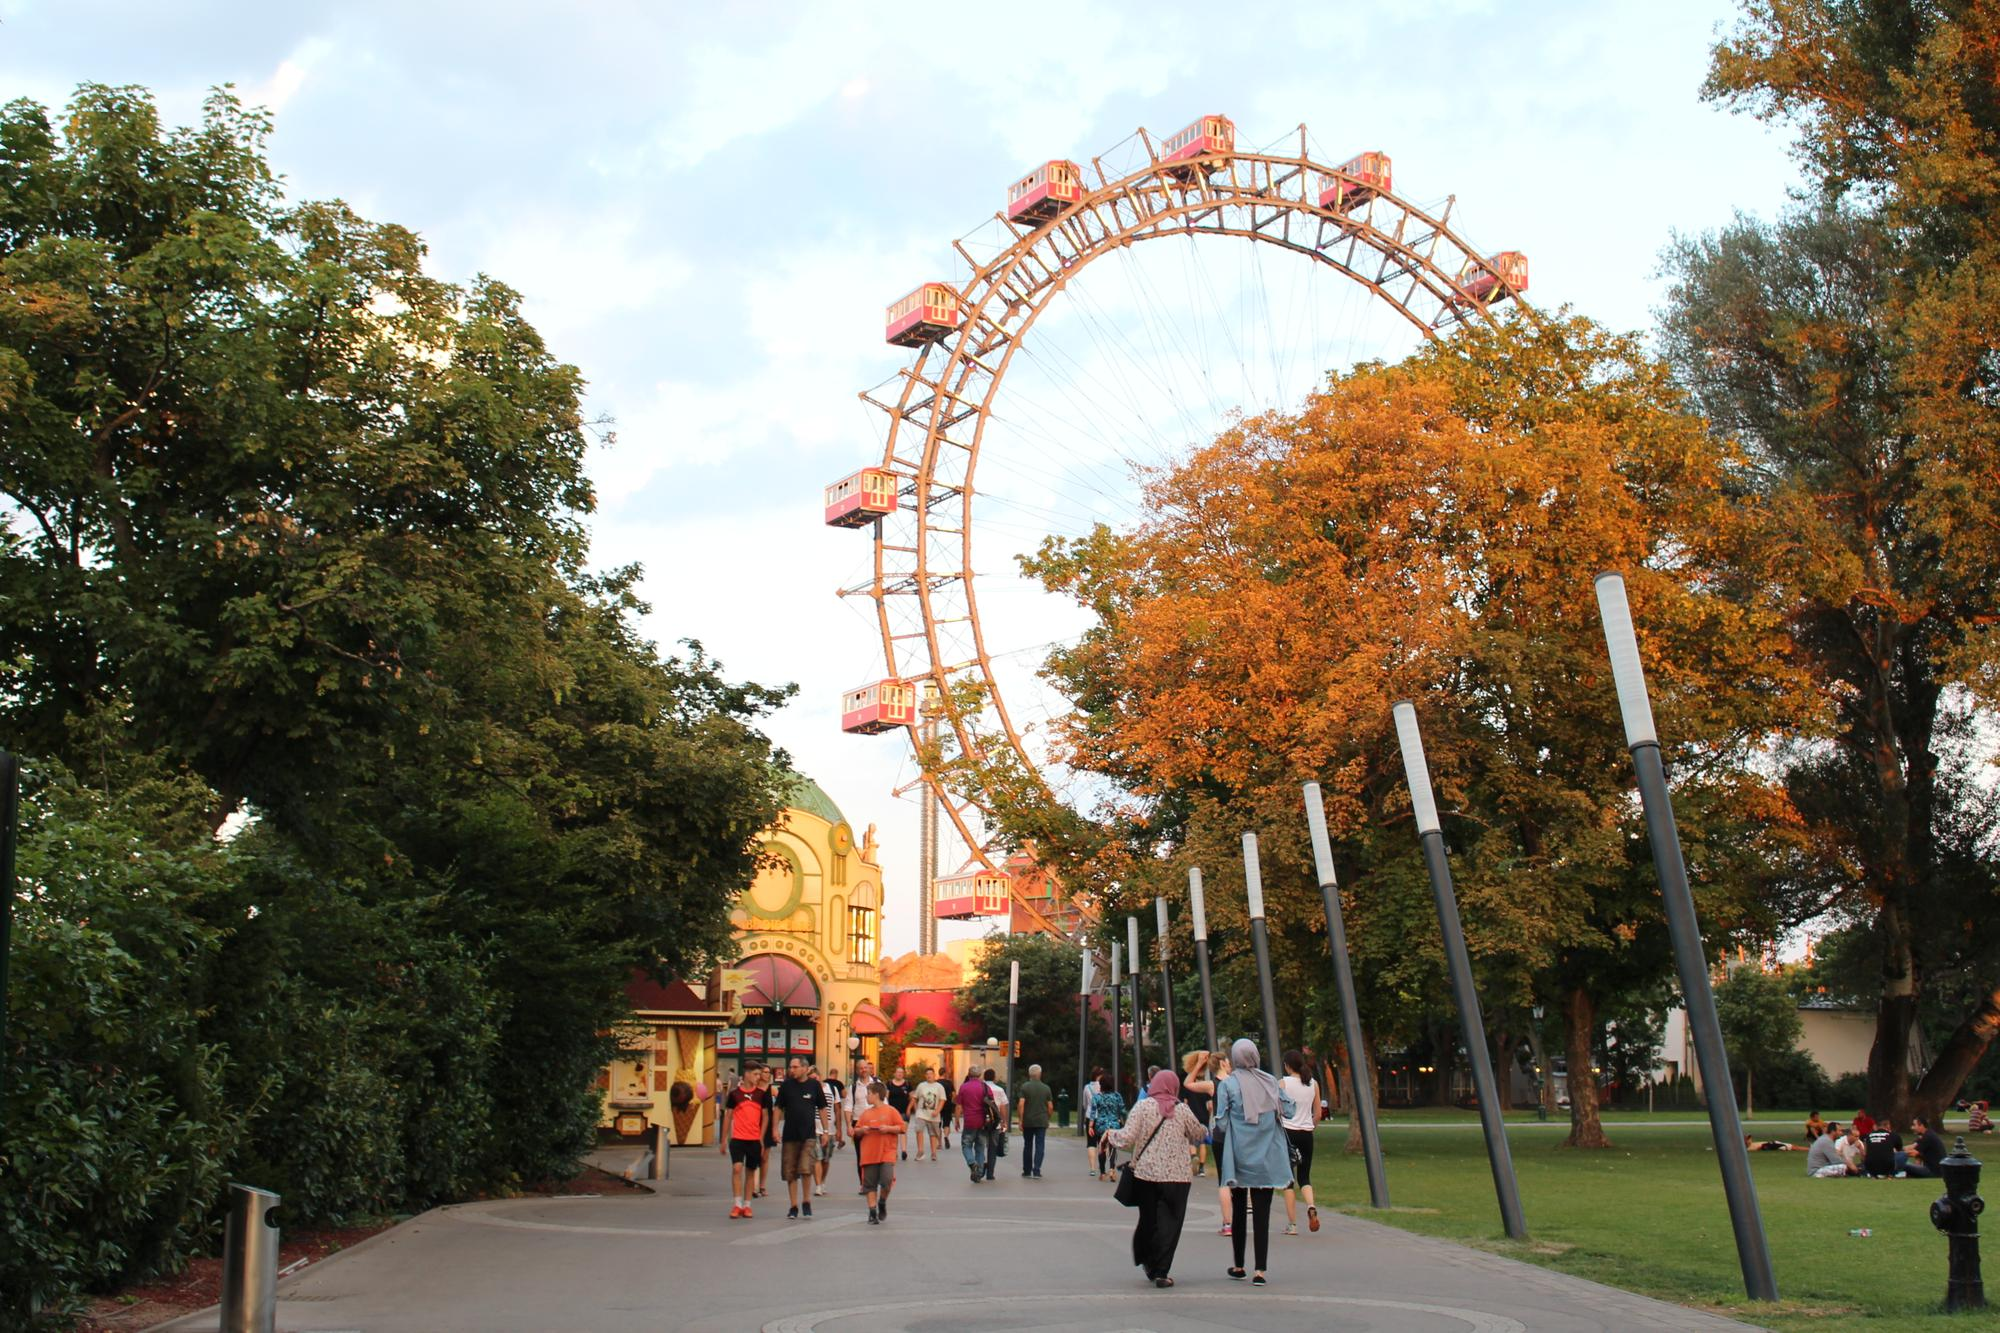 entrance to the vienna prater with the ferris wheel in the background